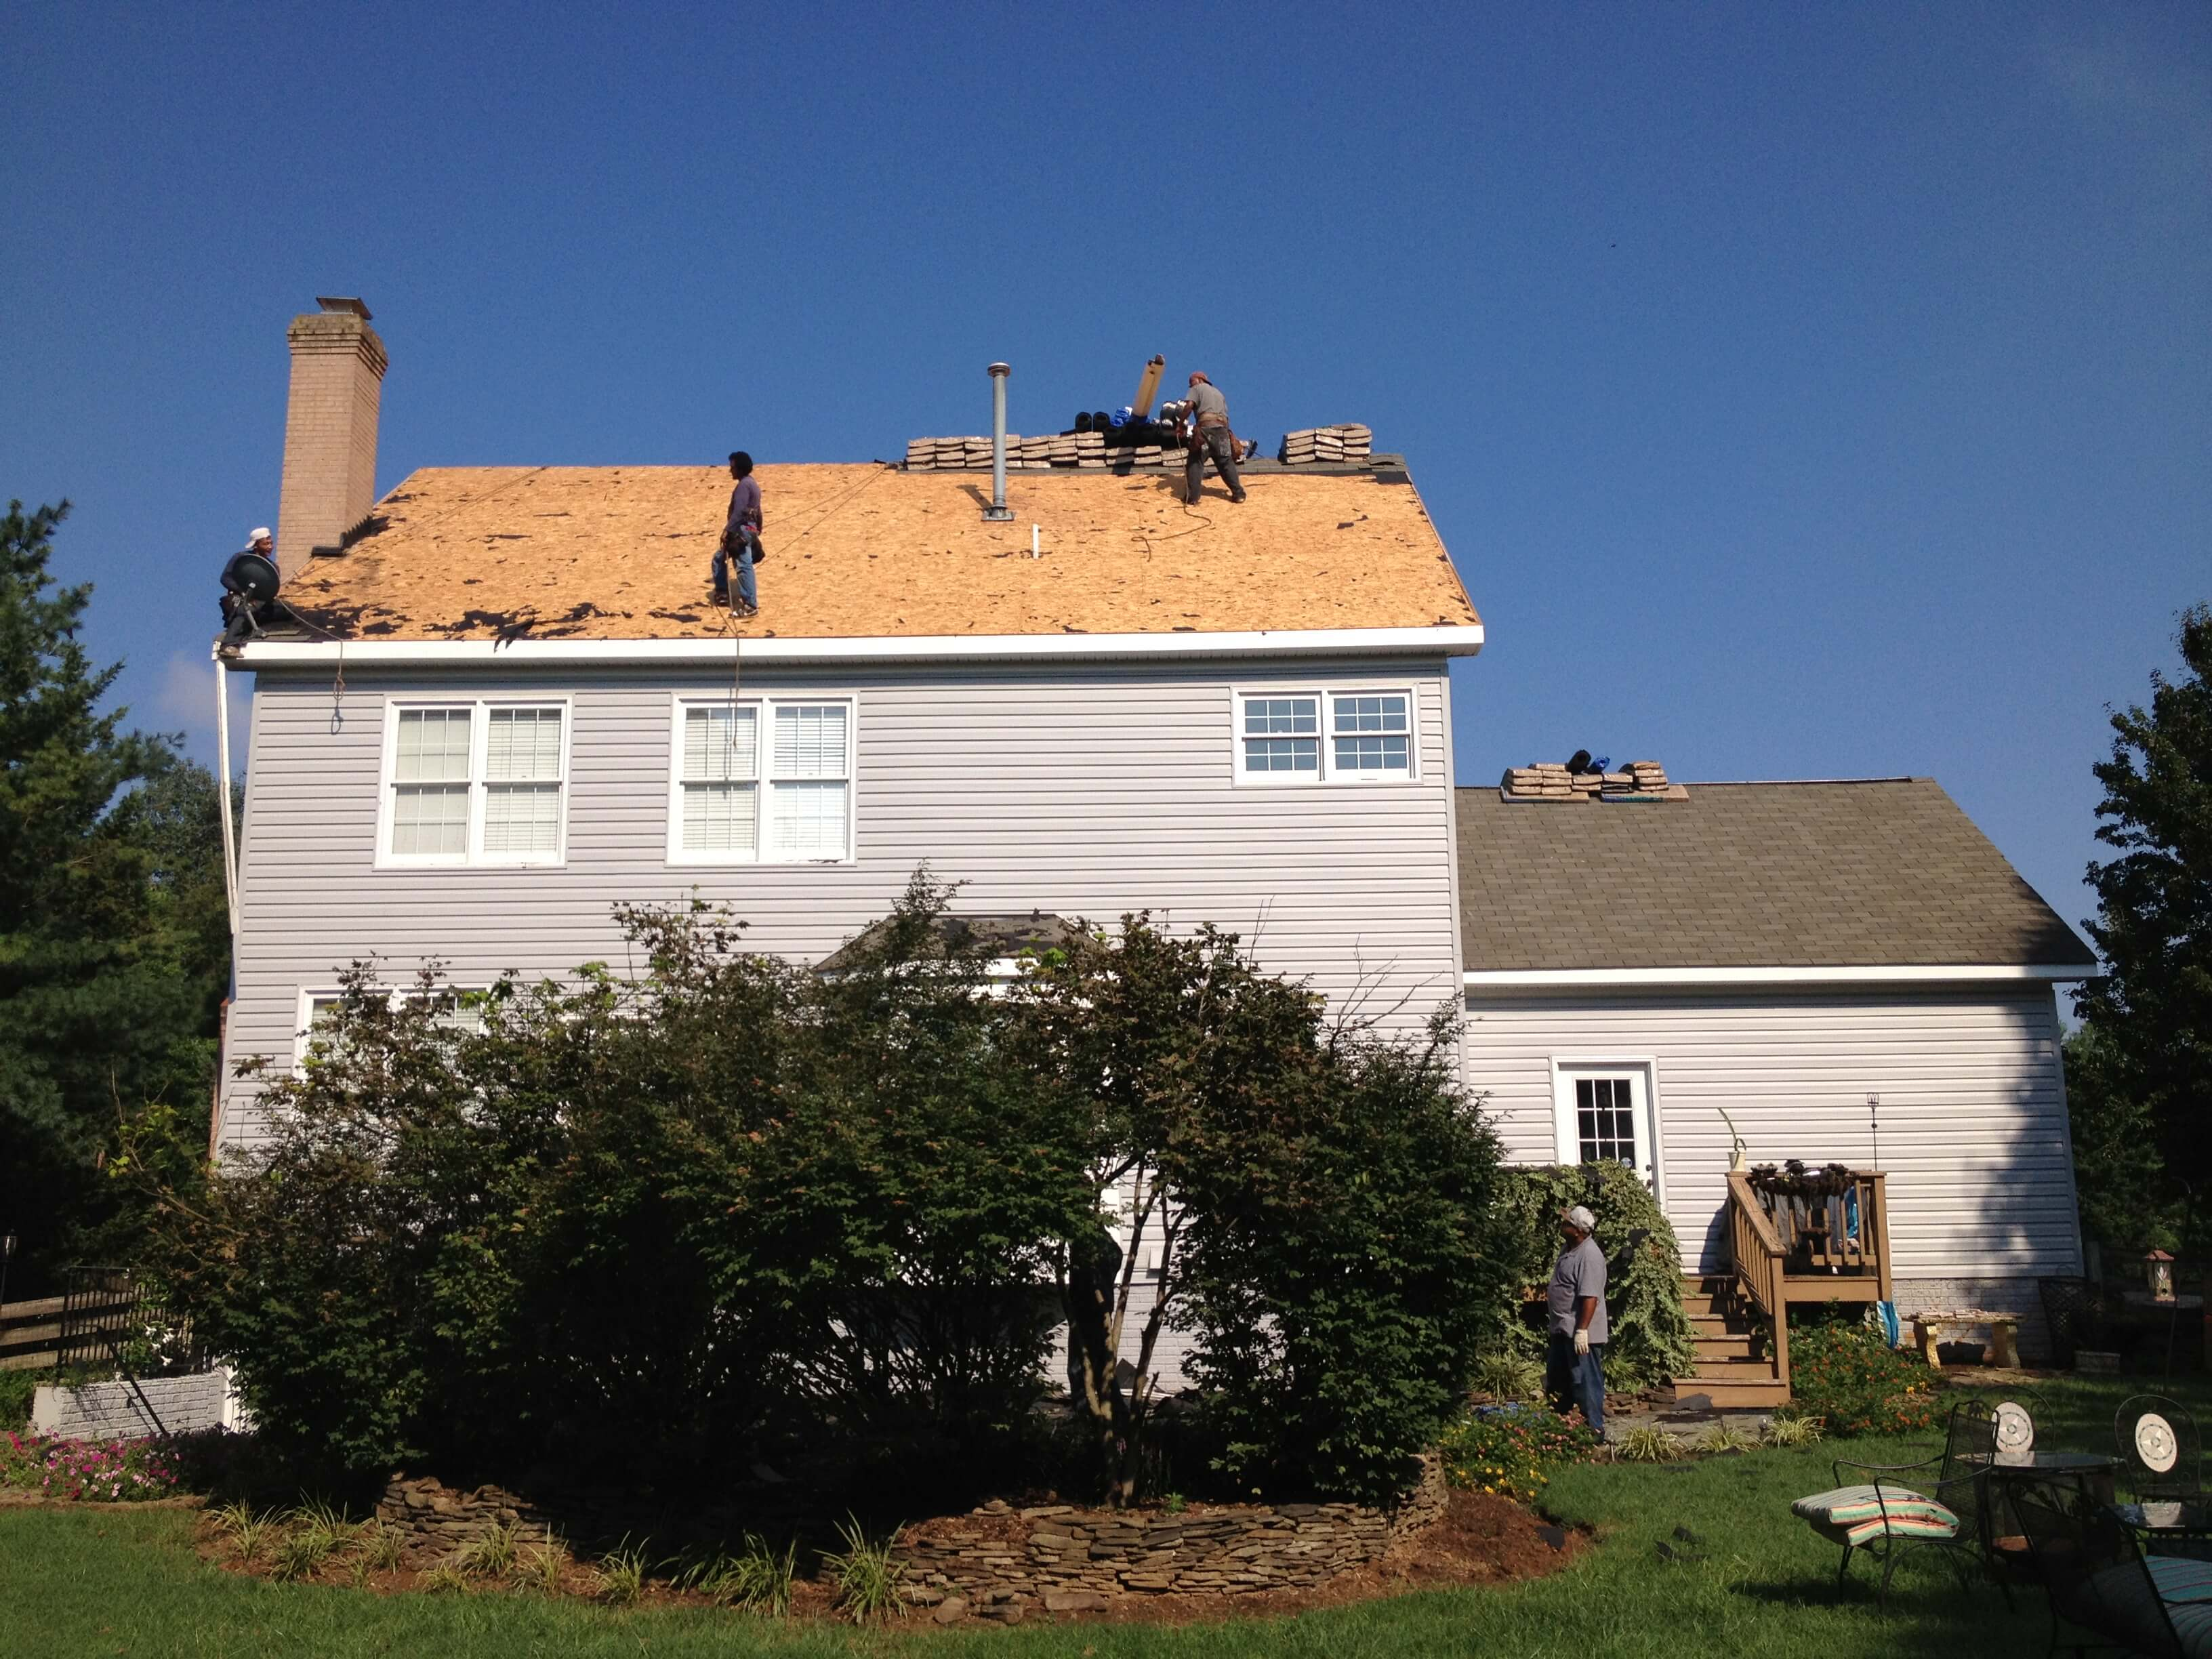 Roofing Company Roofing Company In Northern Virginia